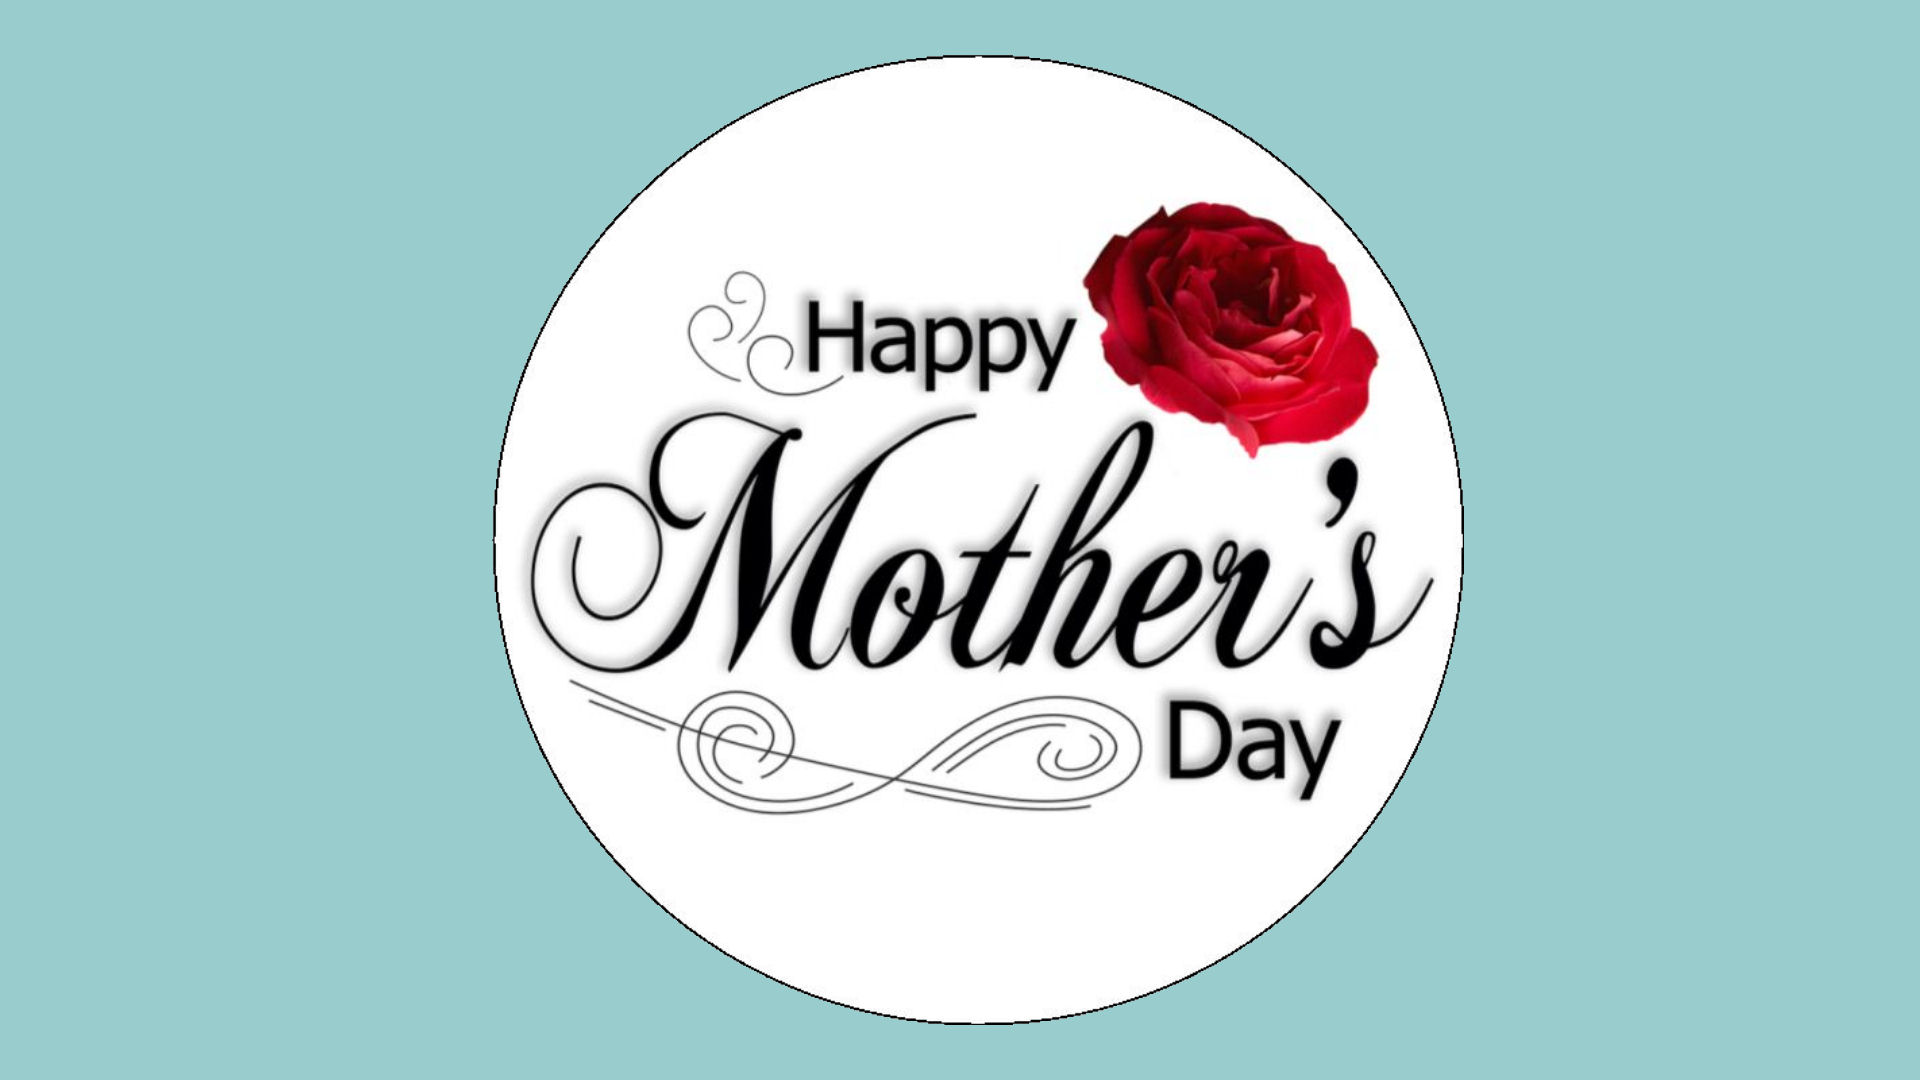 Wallpaper Of Happy Mothers Day: Happy Mother's Day Wallpaper